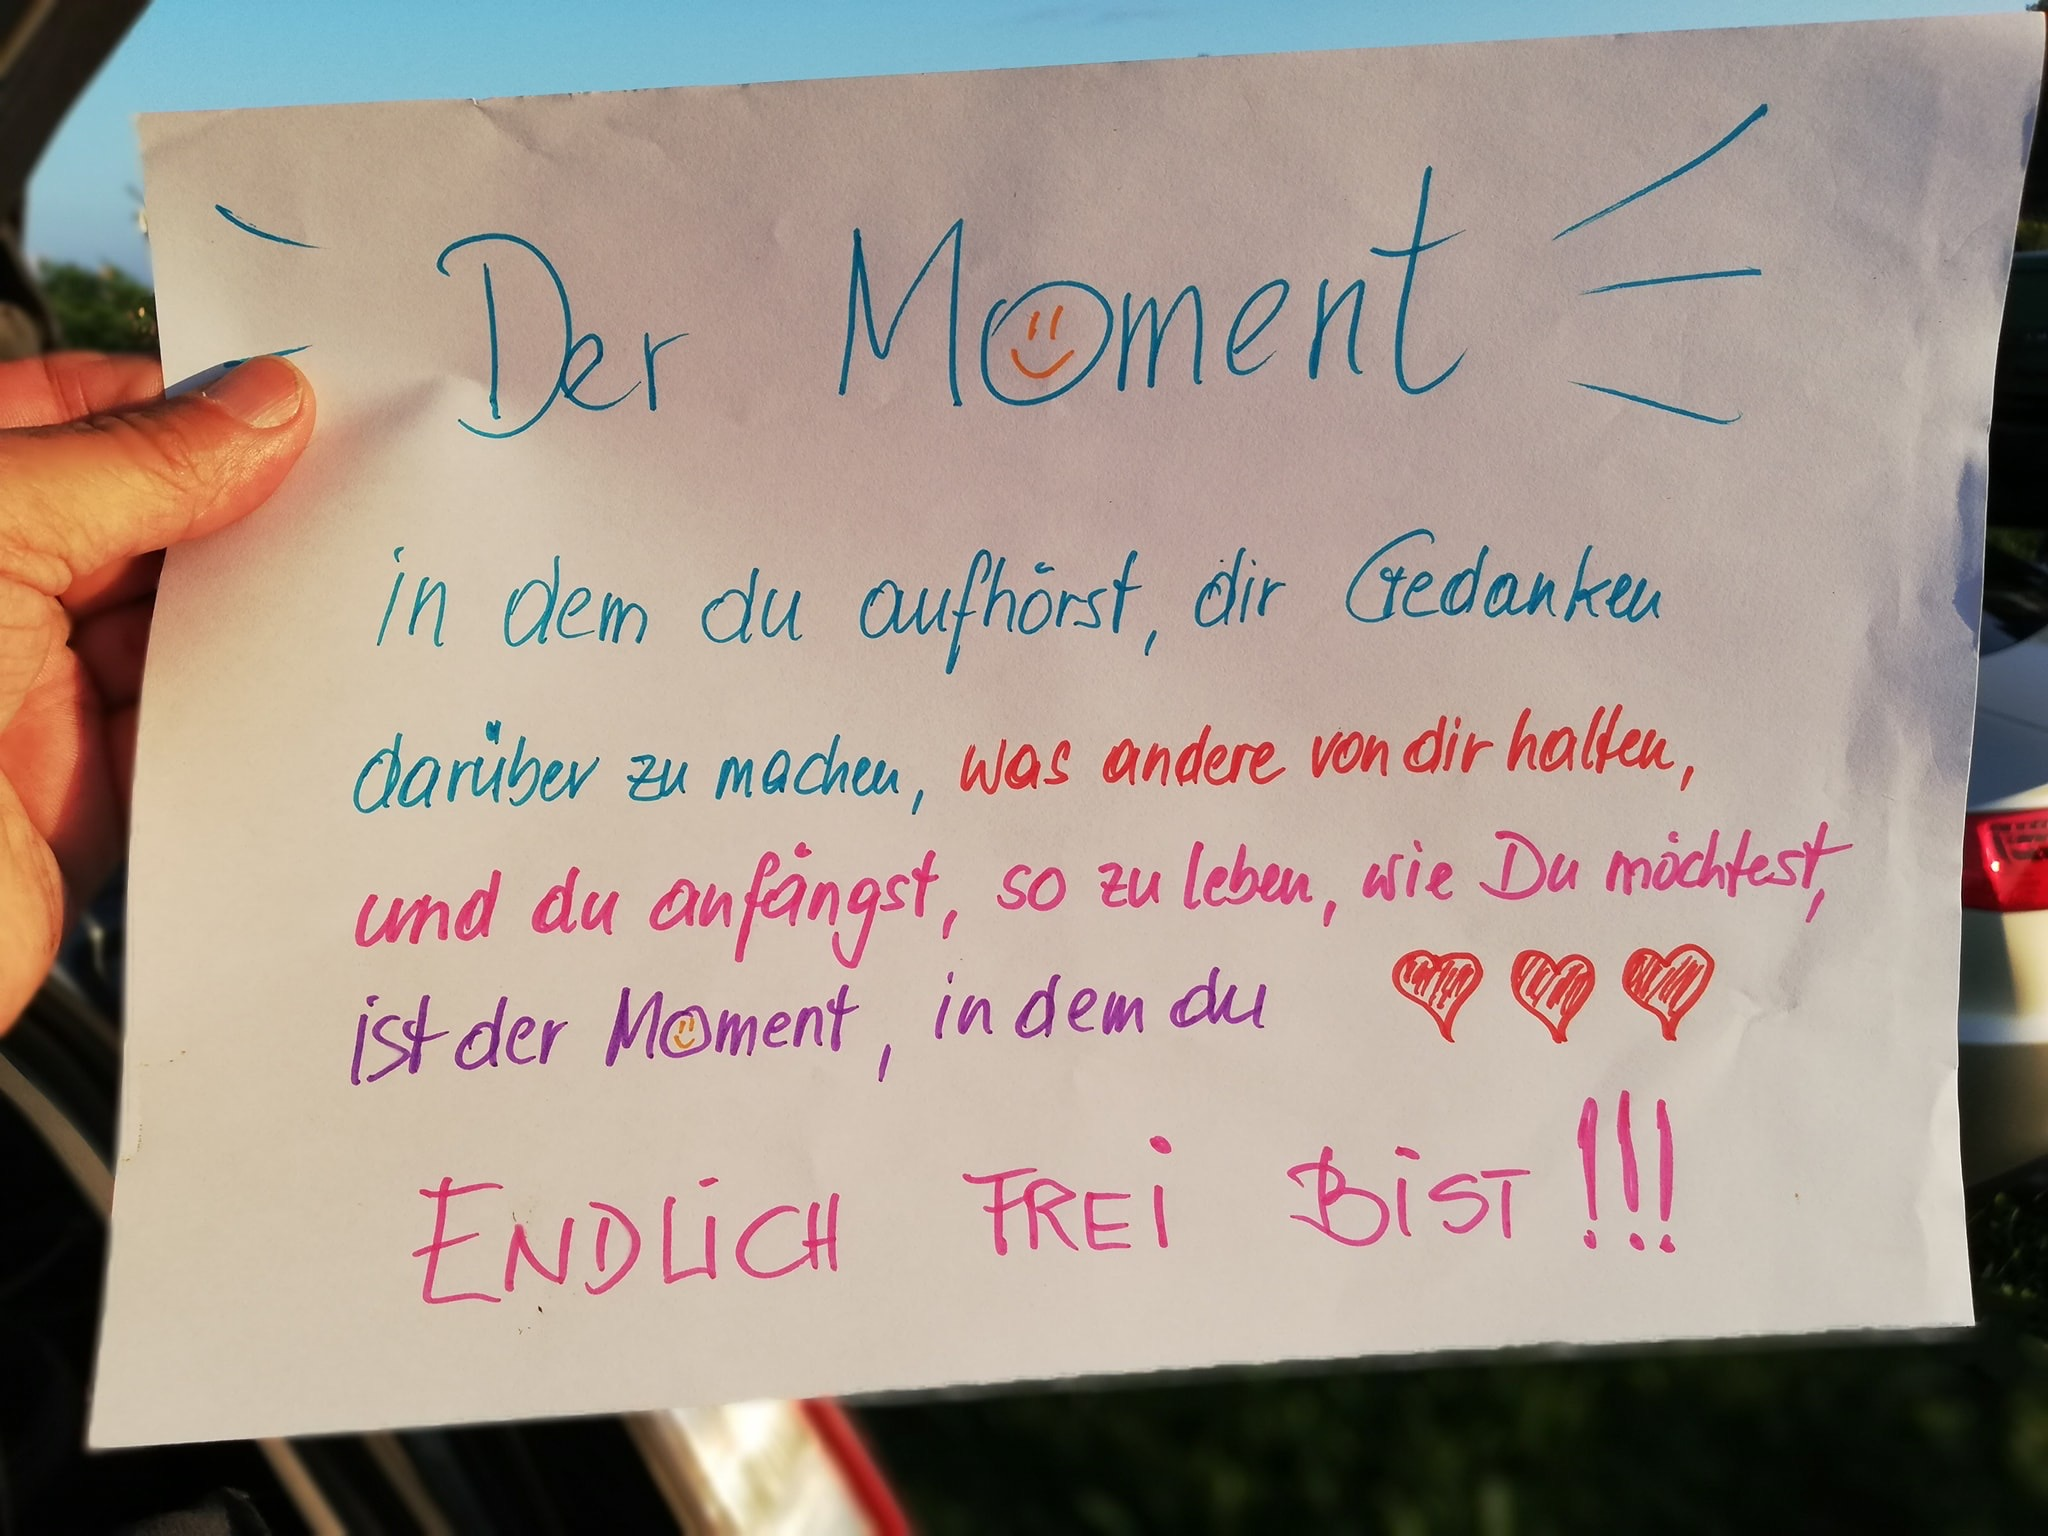 ila News - Der Moment